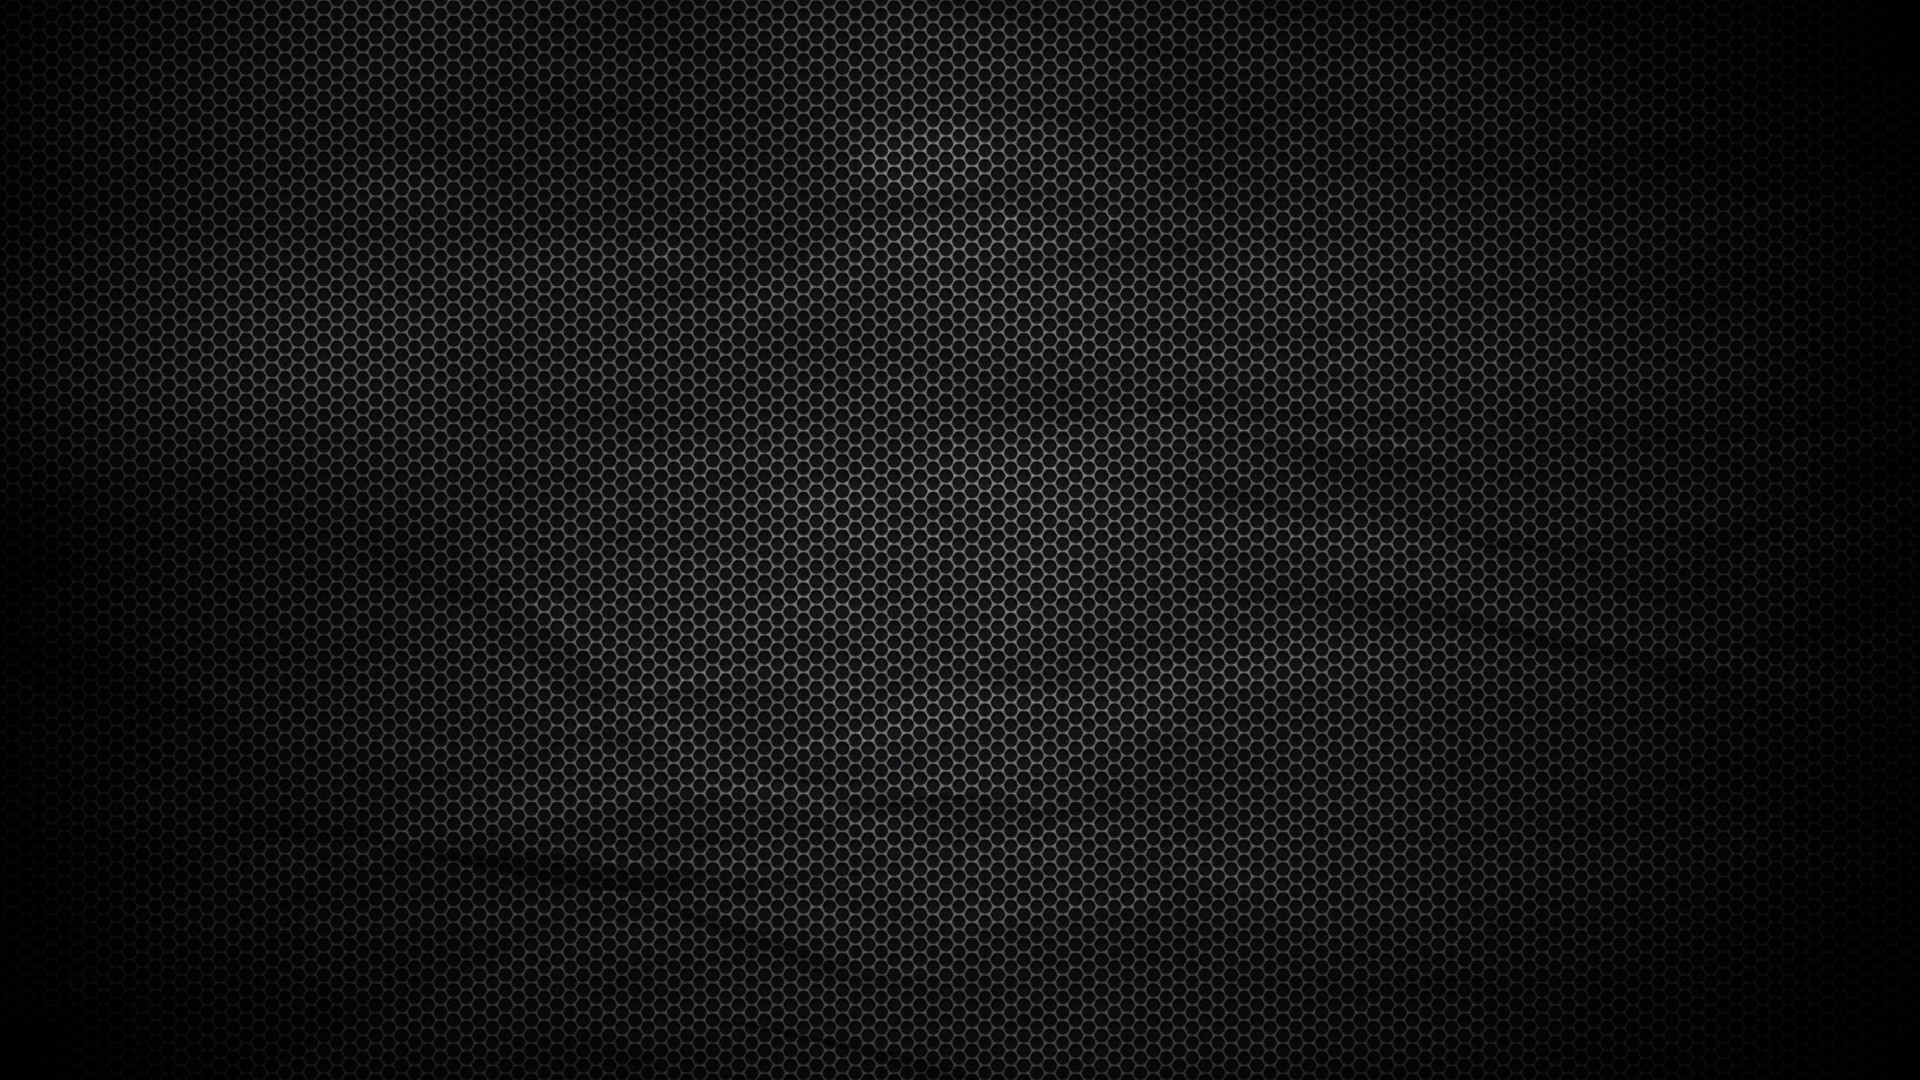 Black Wallpaper 1080p 1920x1080 HD